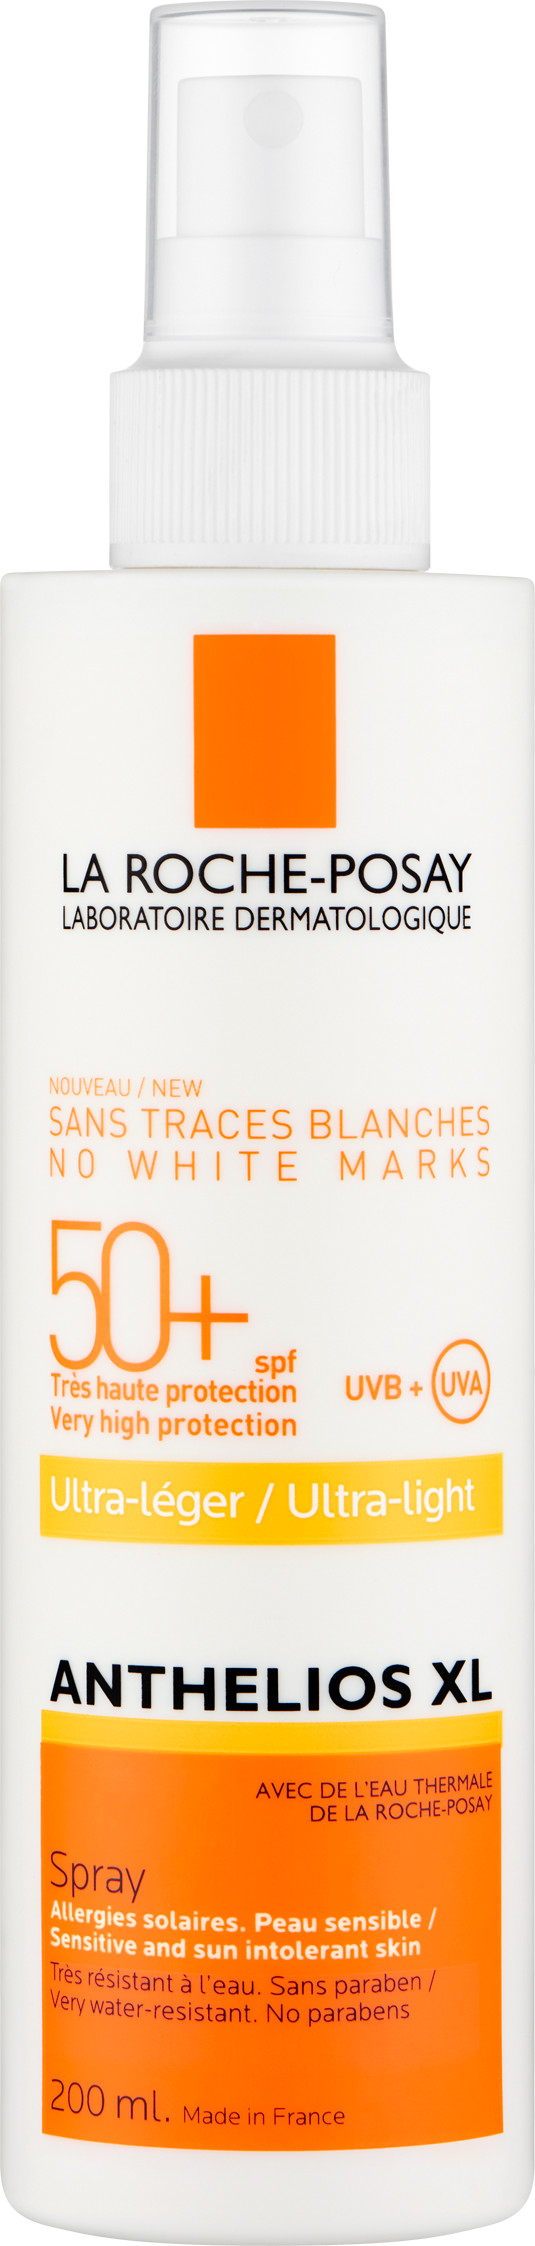 La Roche-Posay Anthelios XL SPF 50+ 200ml